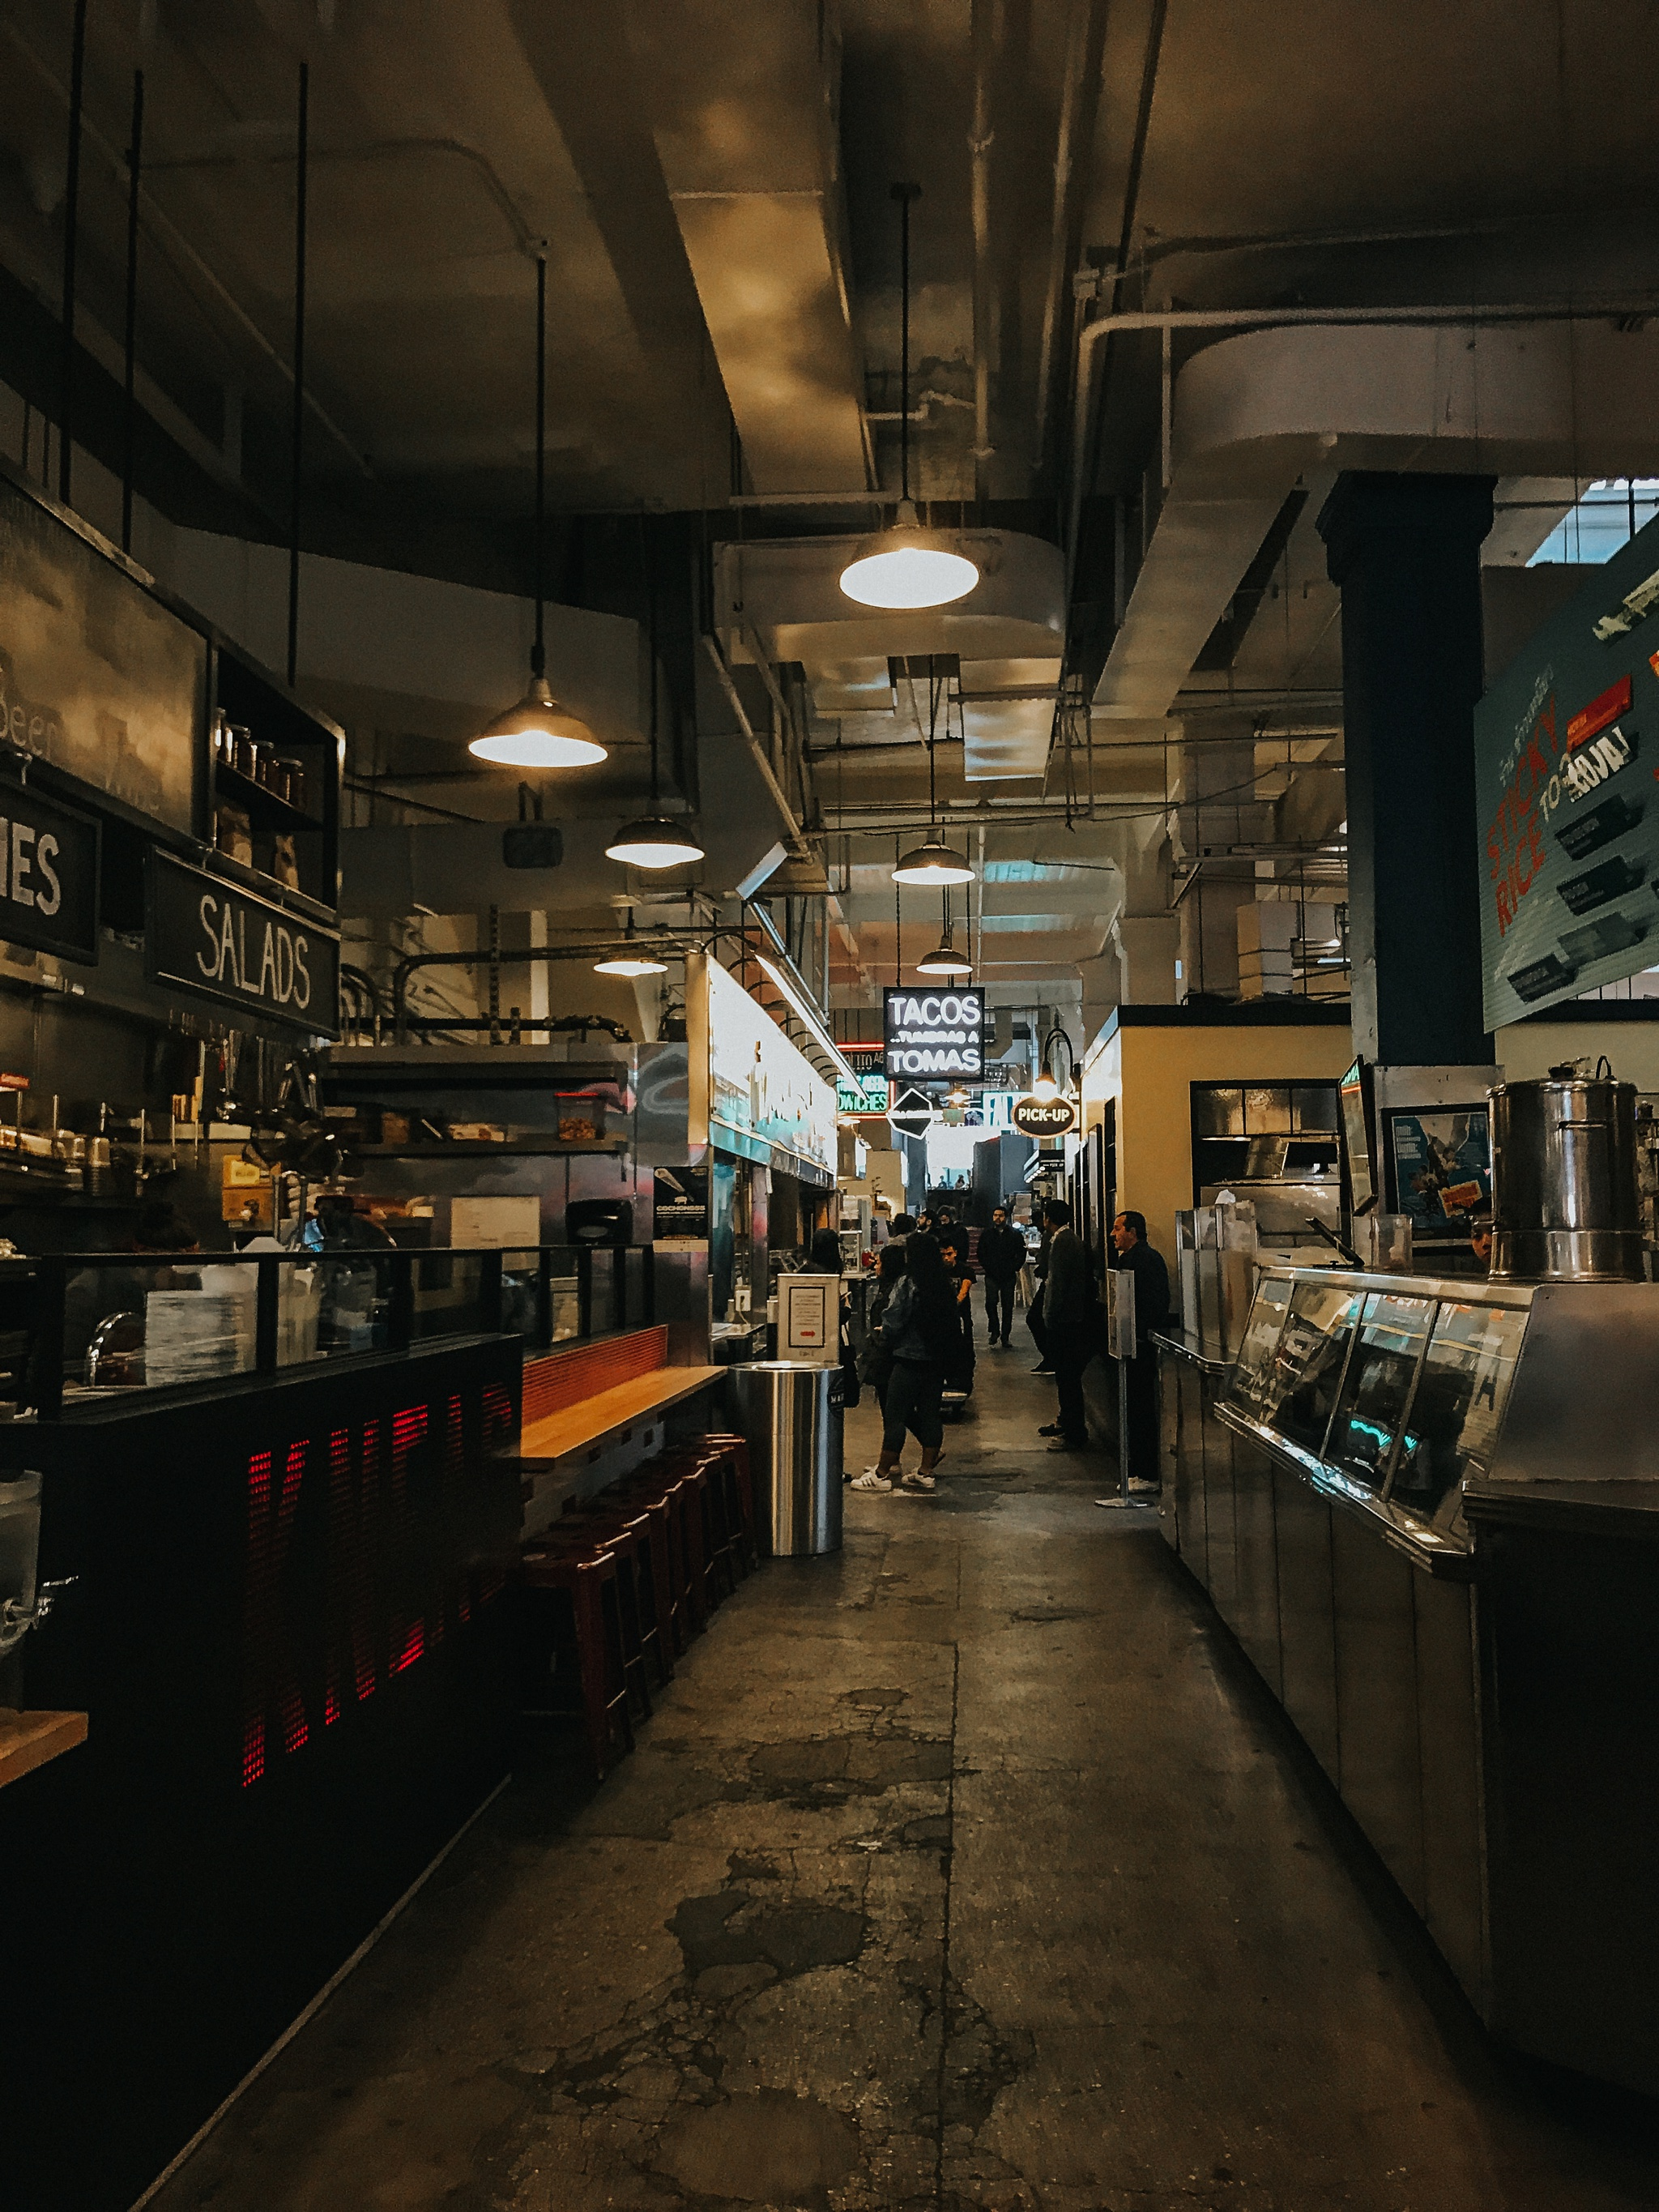 First stop back in LA was Grand Central Market for some coffee and breakfast.